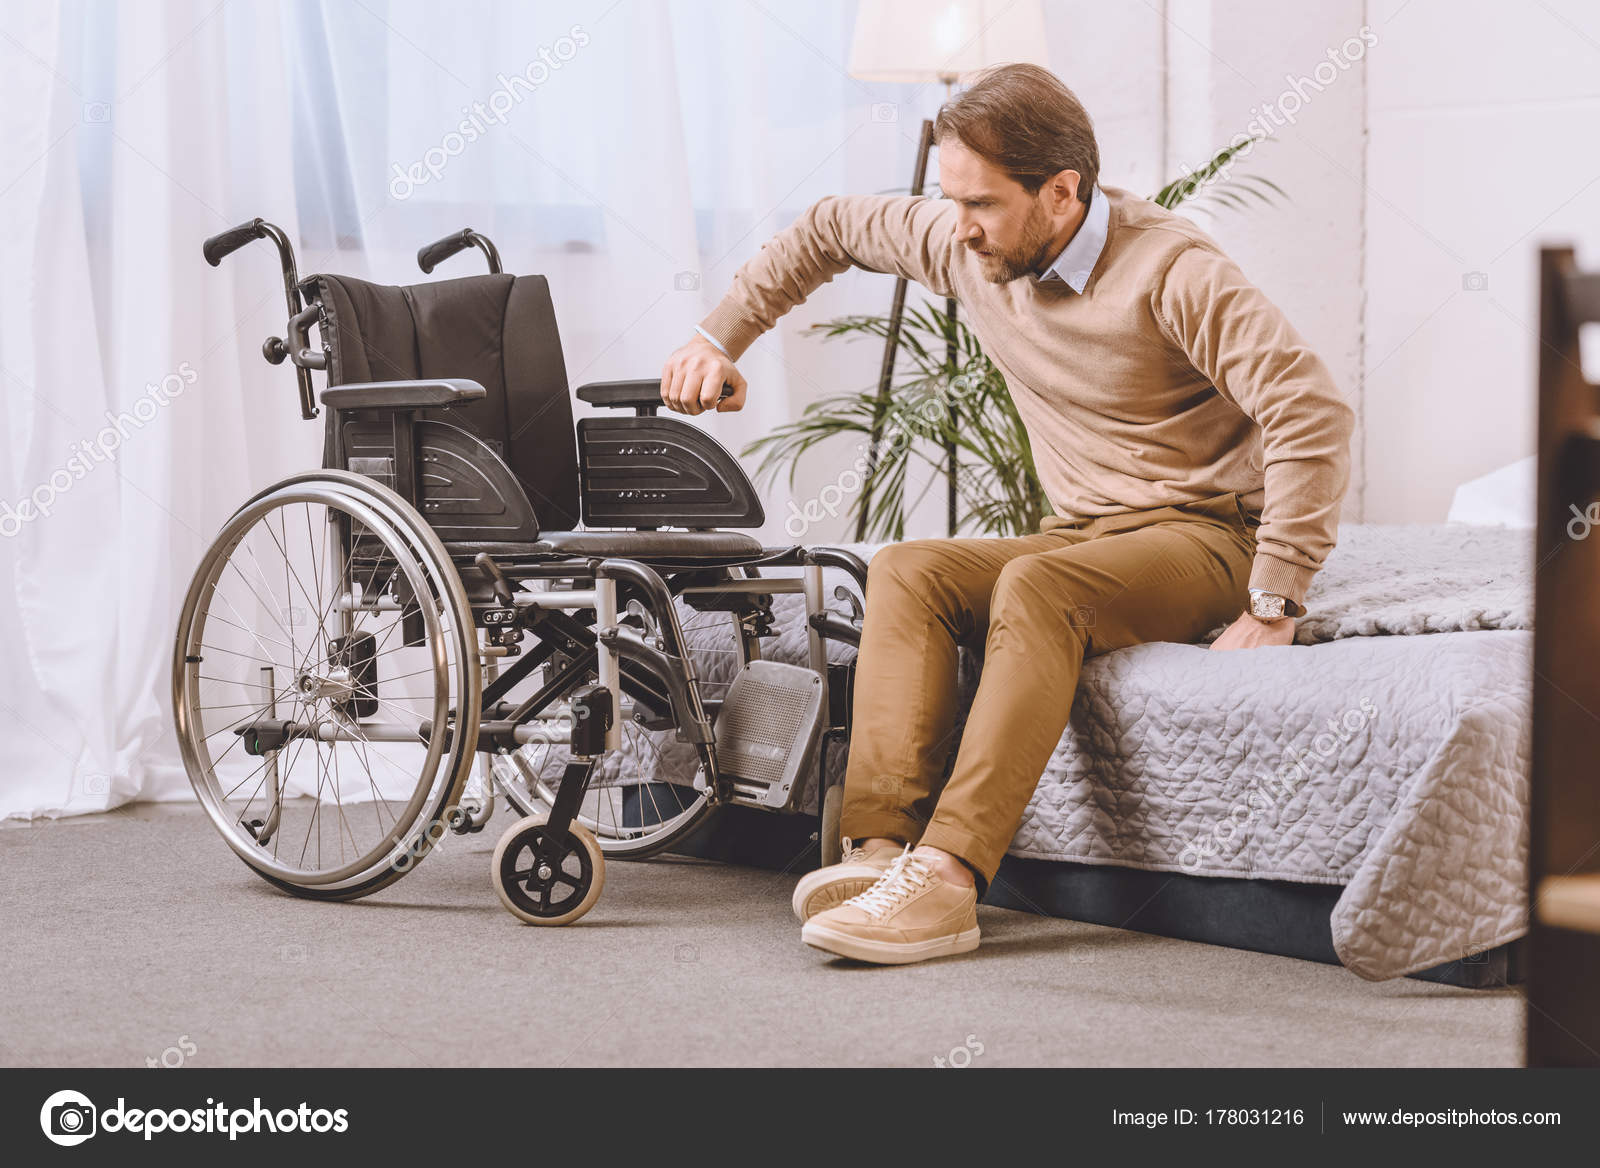 Bed Wheelchair Man Disability Trying Sit Wheelchair Bed Stock Photo